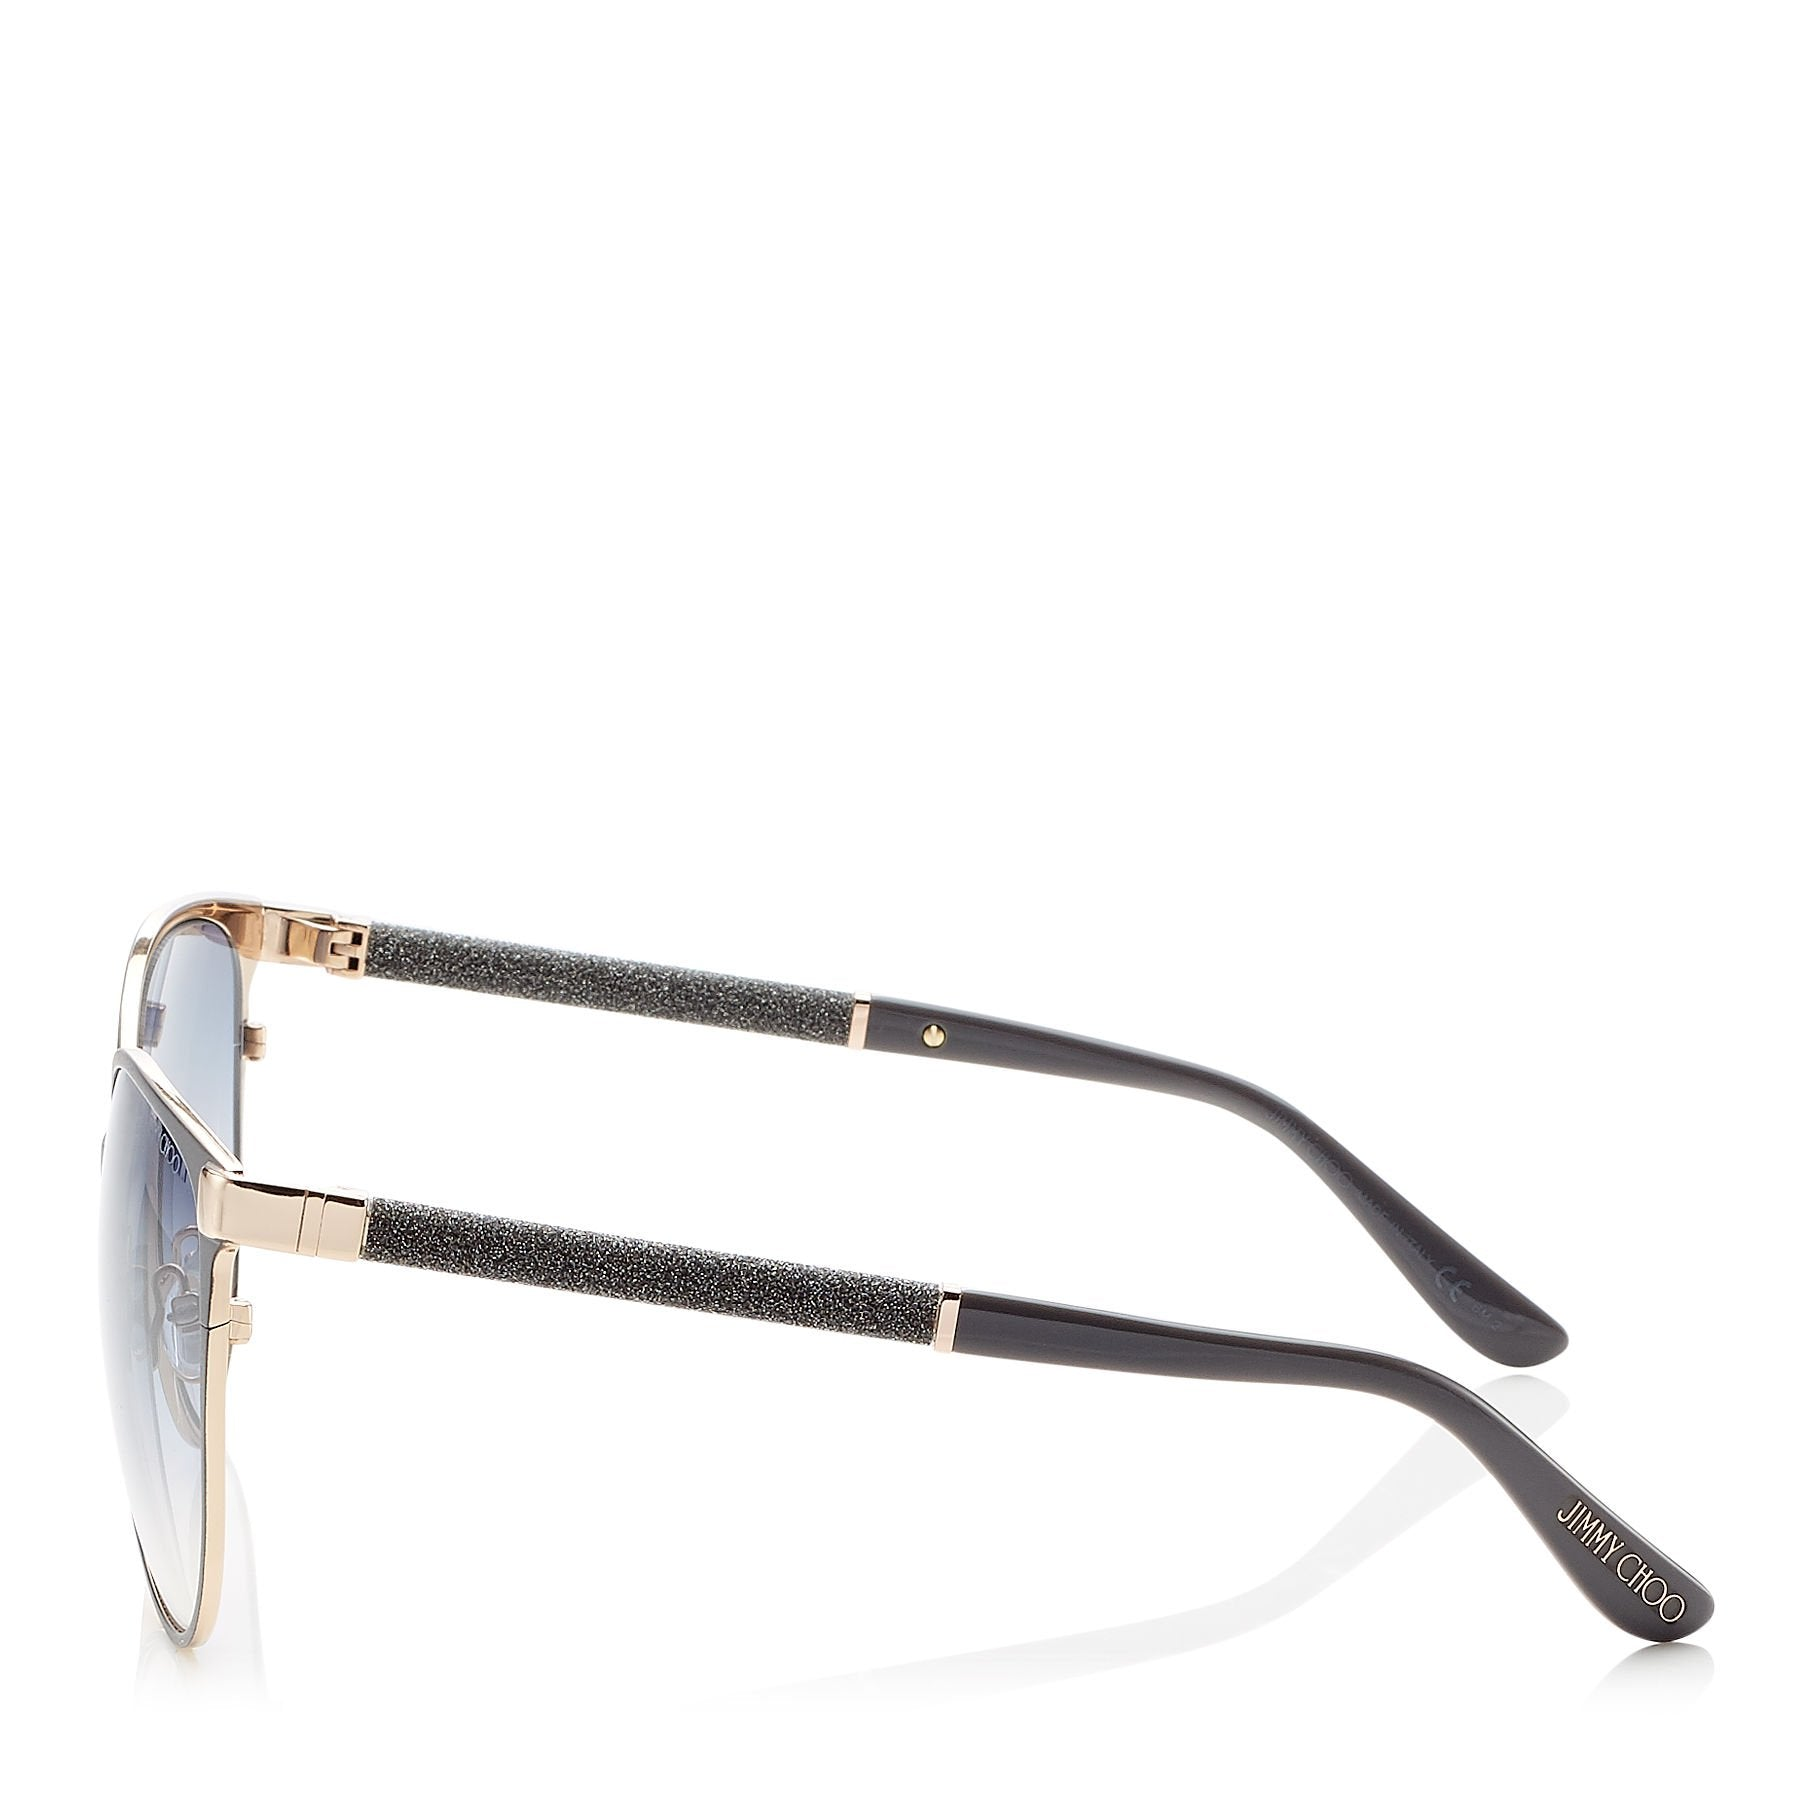 JIMMY CHOO Posie Grey and Gold Framed Sunglasses with Glitter Detail ITEM NO. POSIES60EP4G